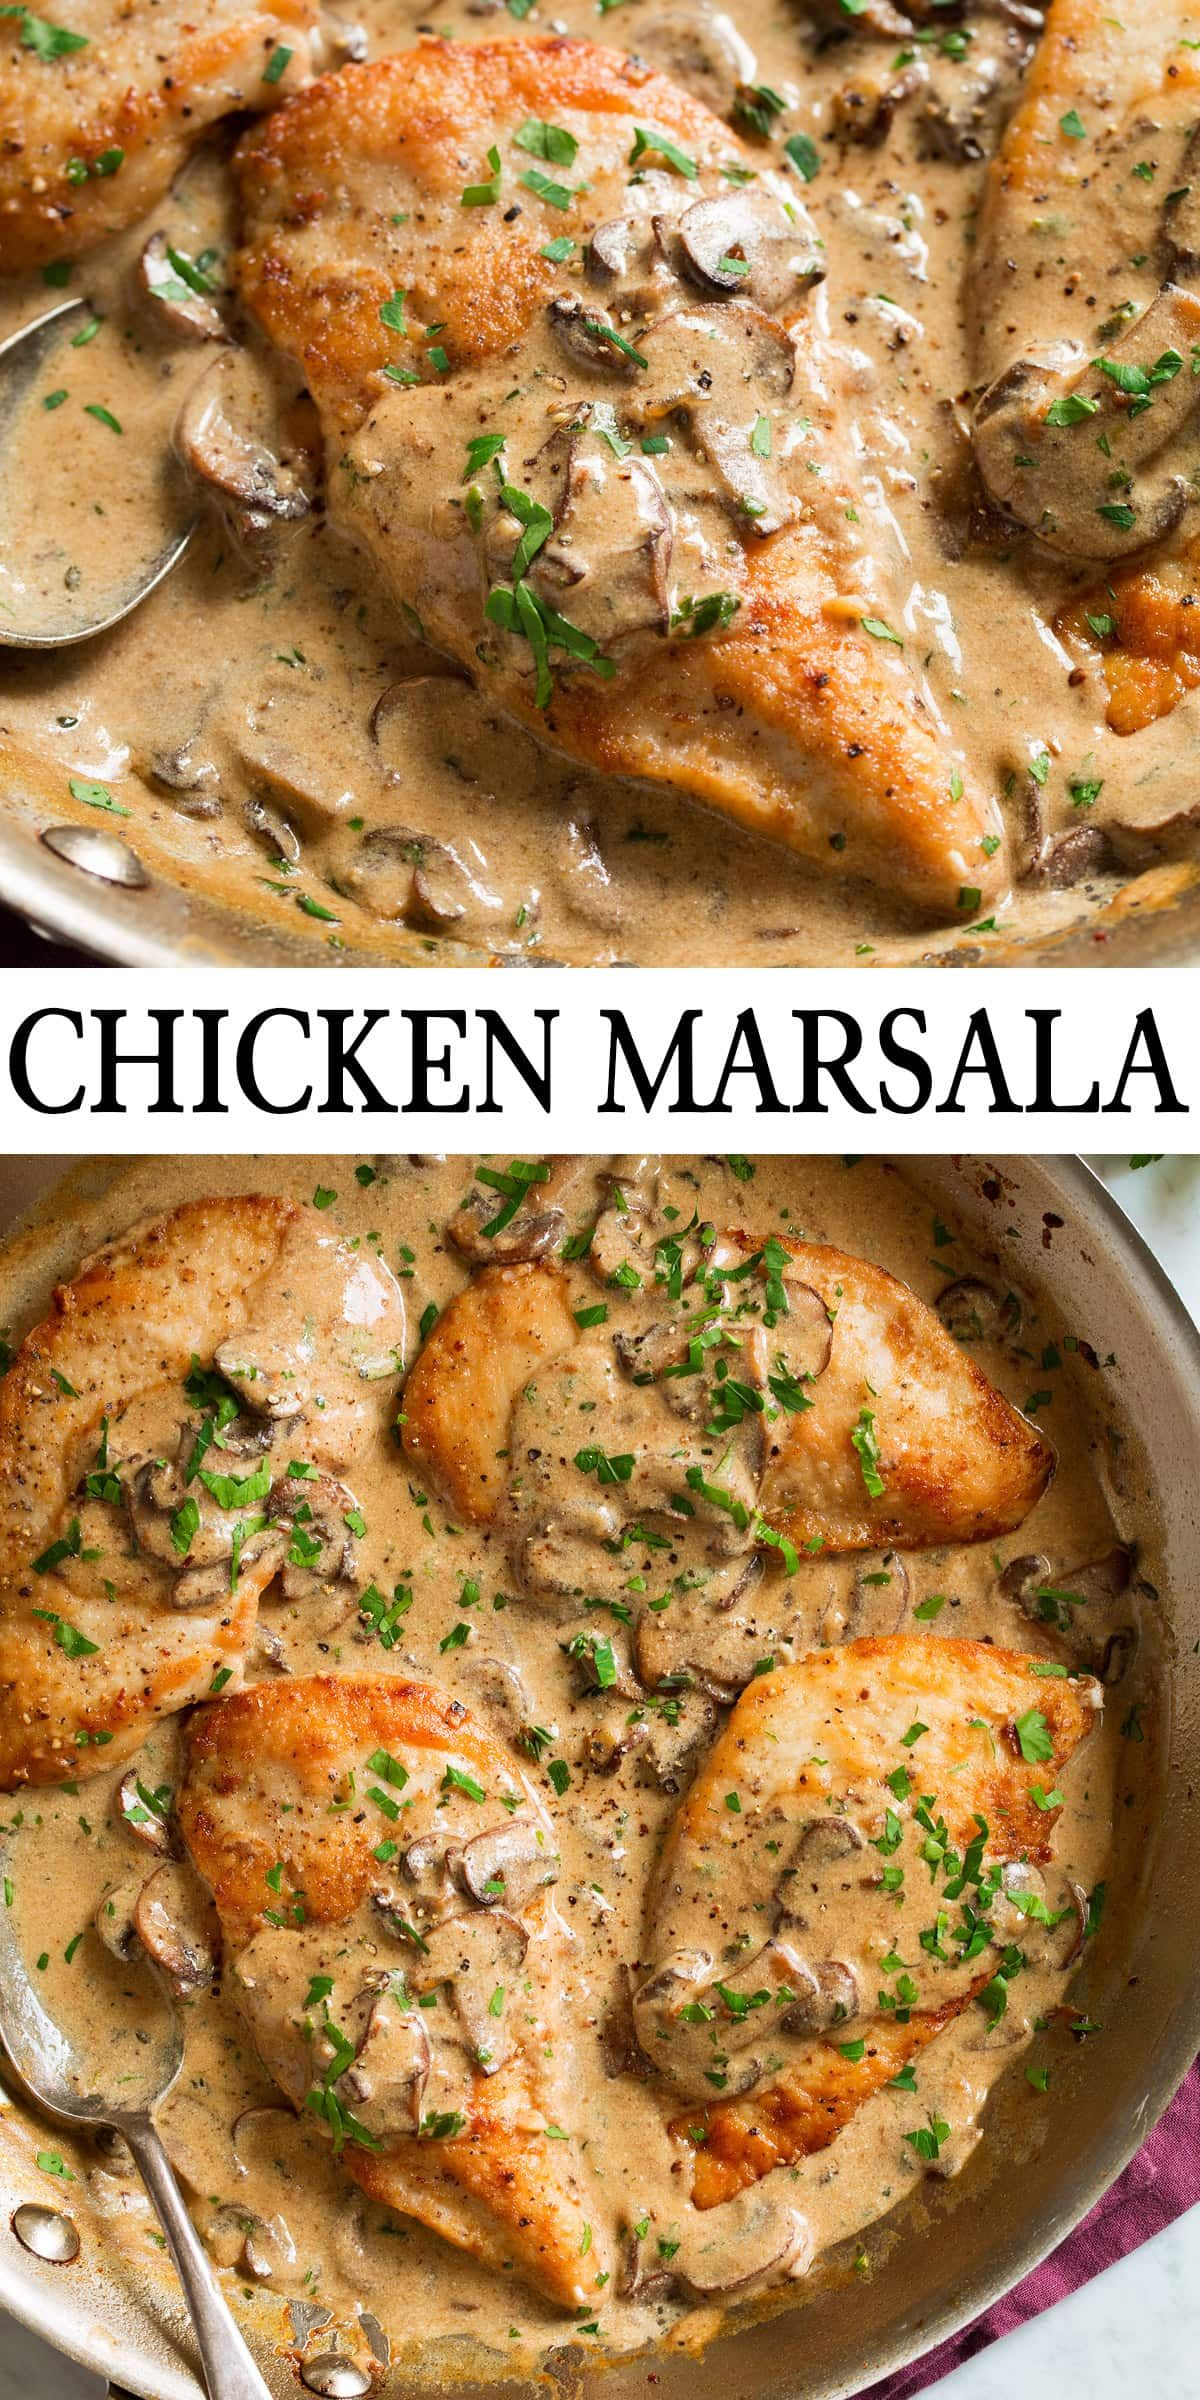 Chicken Marsala This Classic Italian American Chicken Recipe Includes Tender Perfectly Pan Seared Chicken Cu Marsala Chicken Recipes Recipes Chicken Recipes